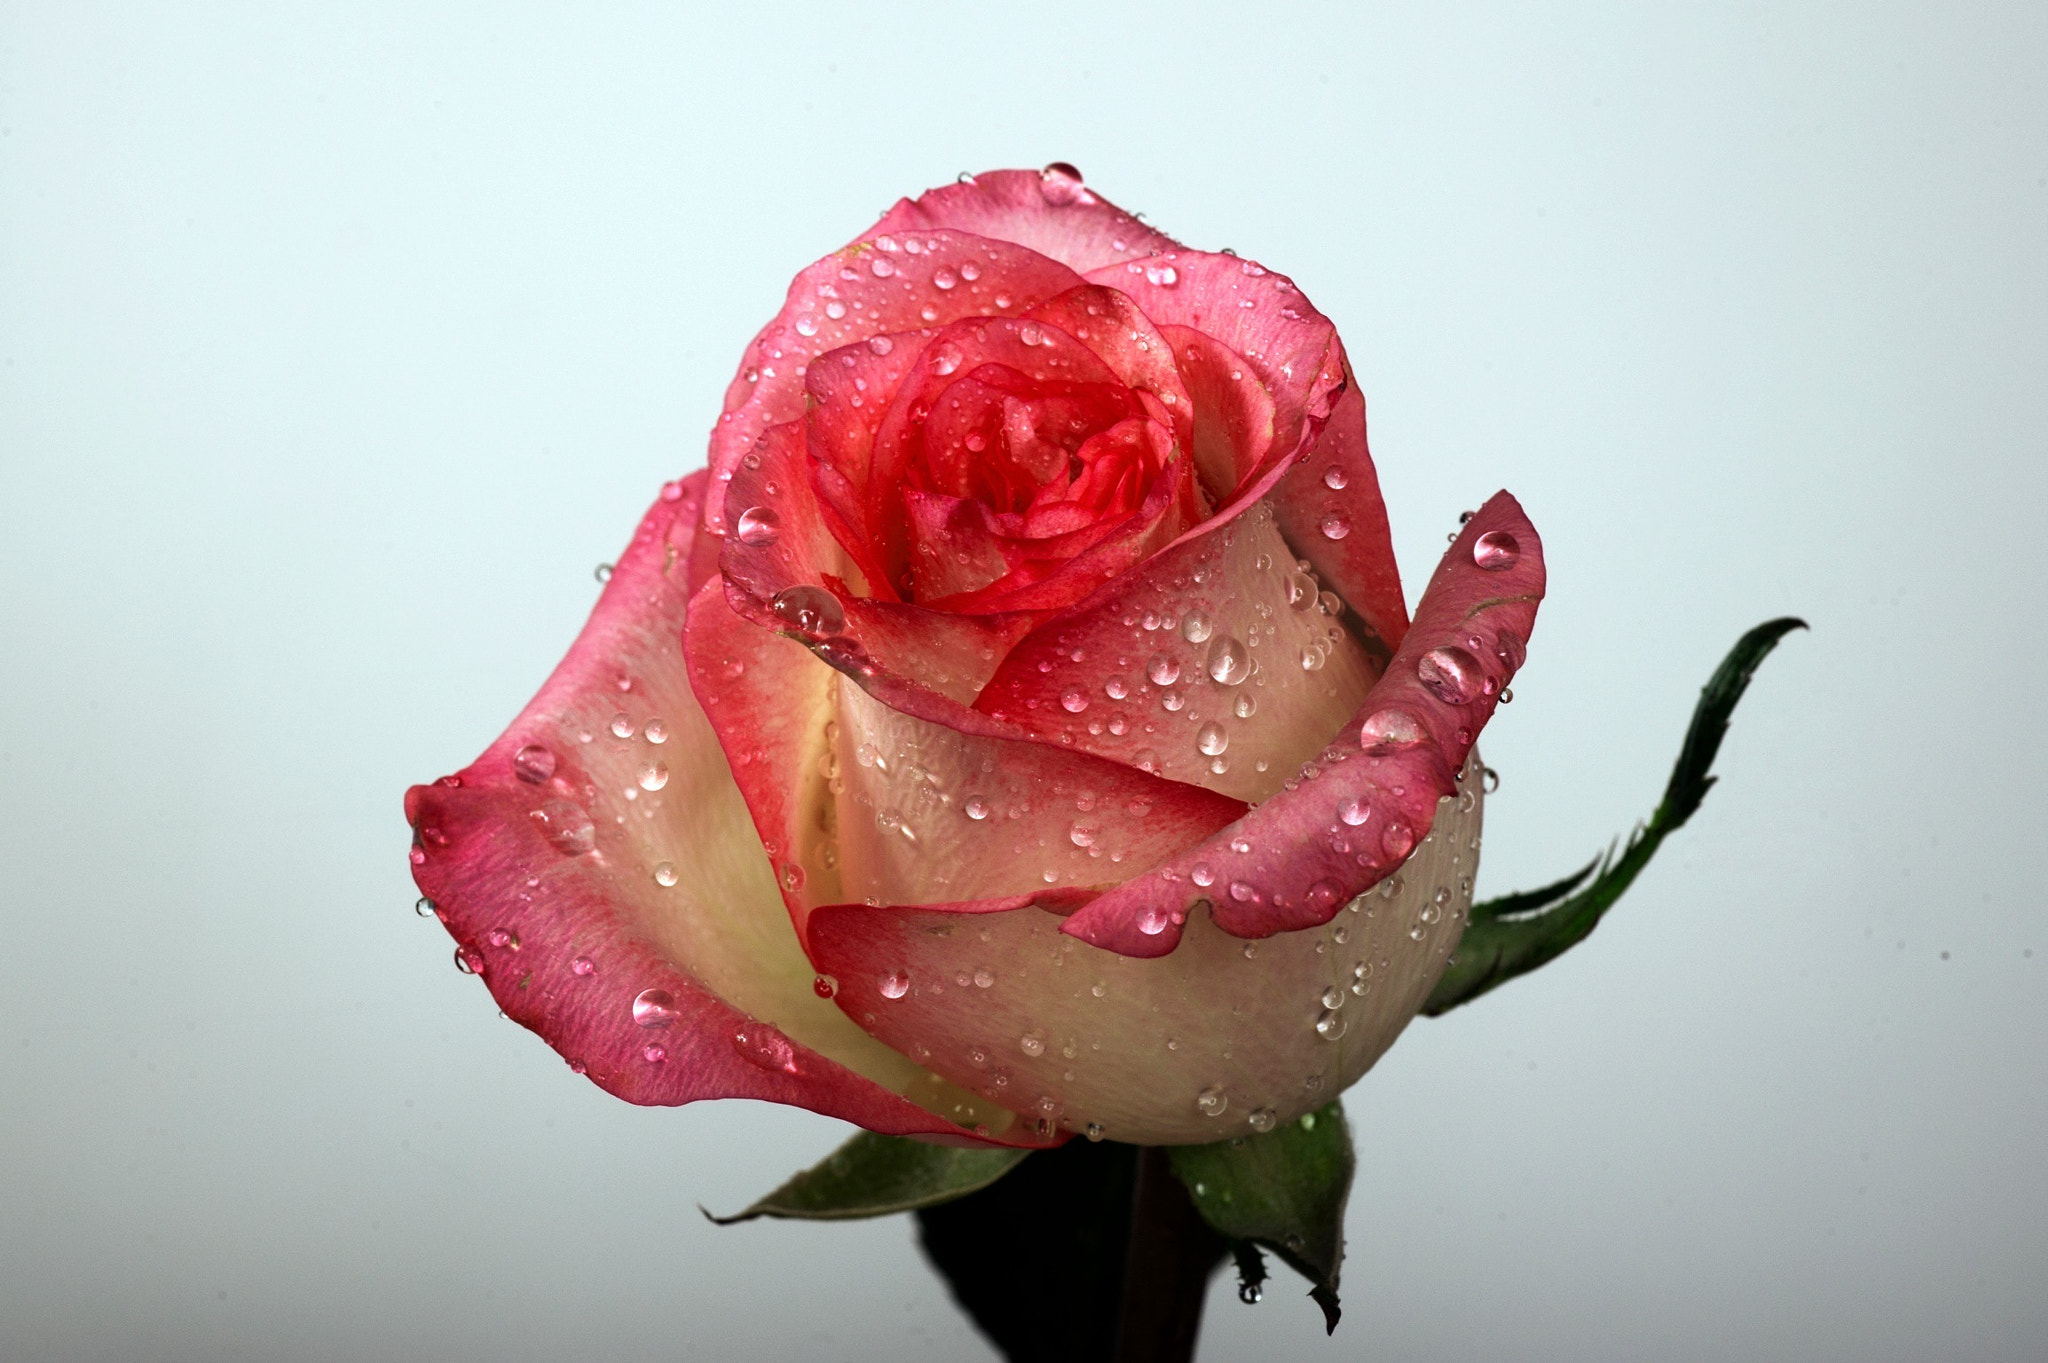 Photograph Rose with raindrops by Cristobal Garciaferro Rubio on 500px